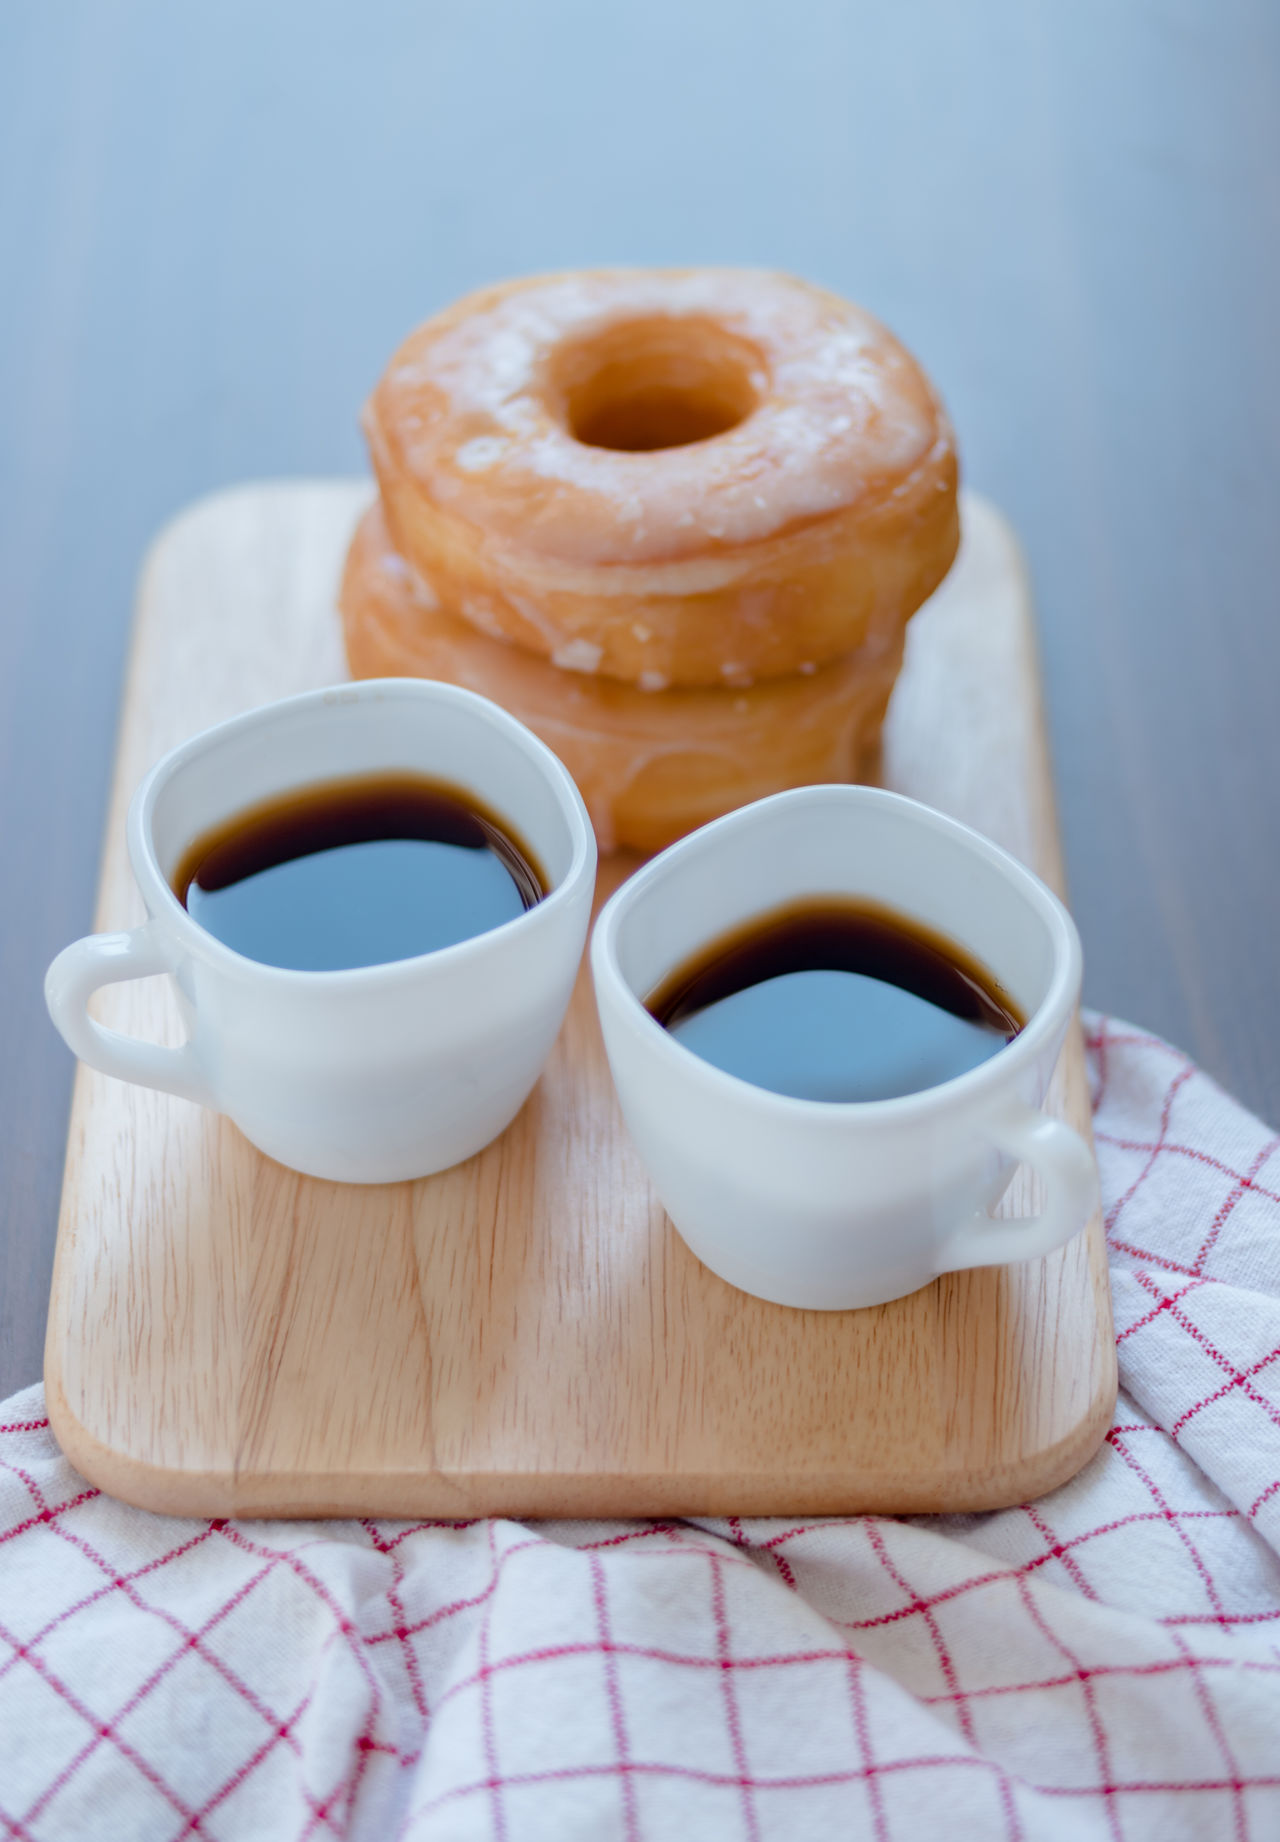 Black Coffee Close-up Coffee Coffee Cup Coffee Time Day Dessert Doughnuts Food Food And Drink Freshness Hot Drink Indoors  No People Ready-to-eat Refreshment Refreshment Soft Doughnut Still Life Sweet Food Table